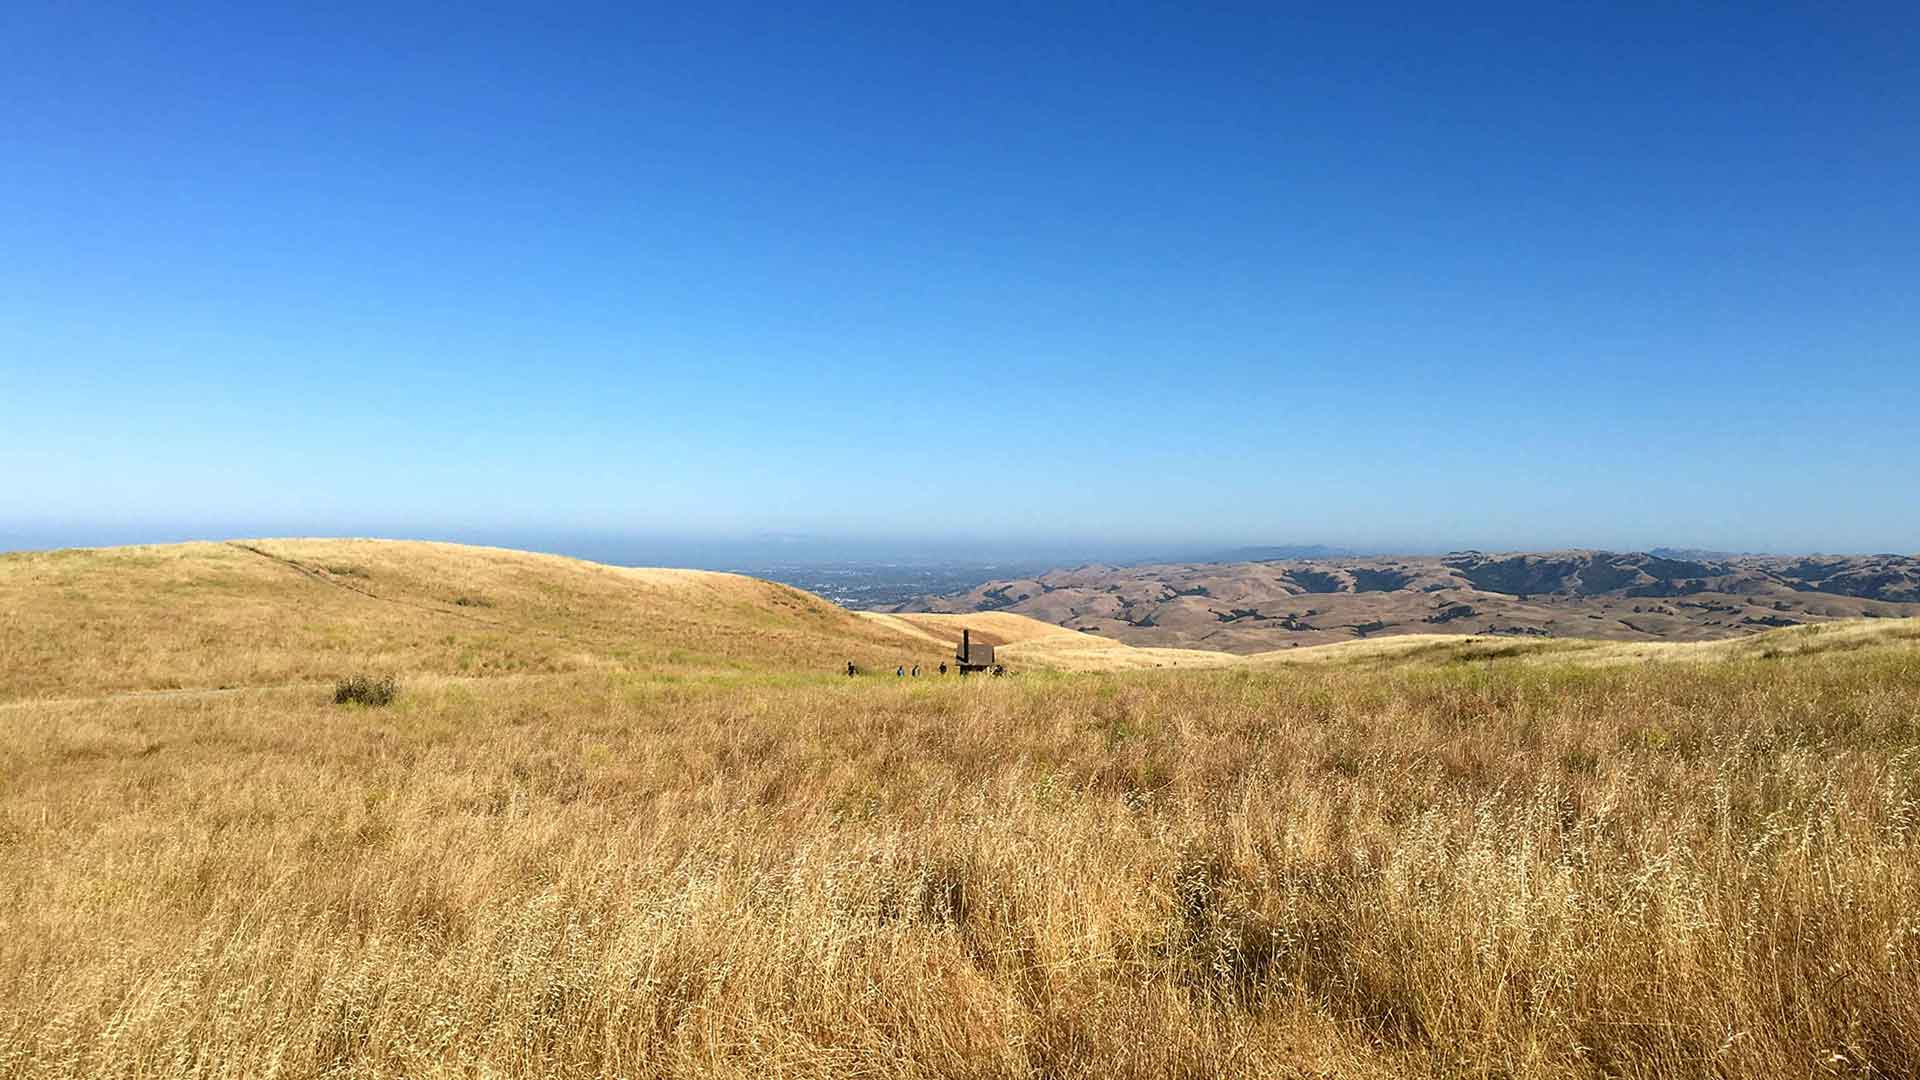 Photos from To Mission Peak 26